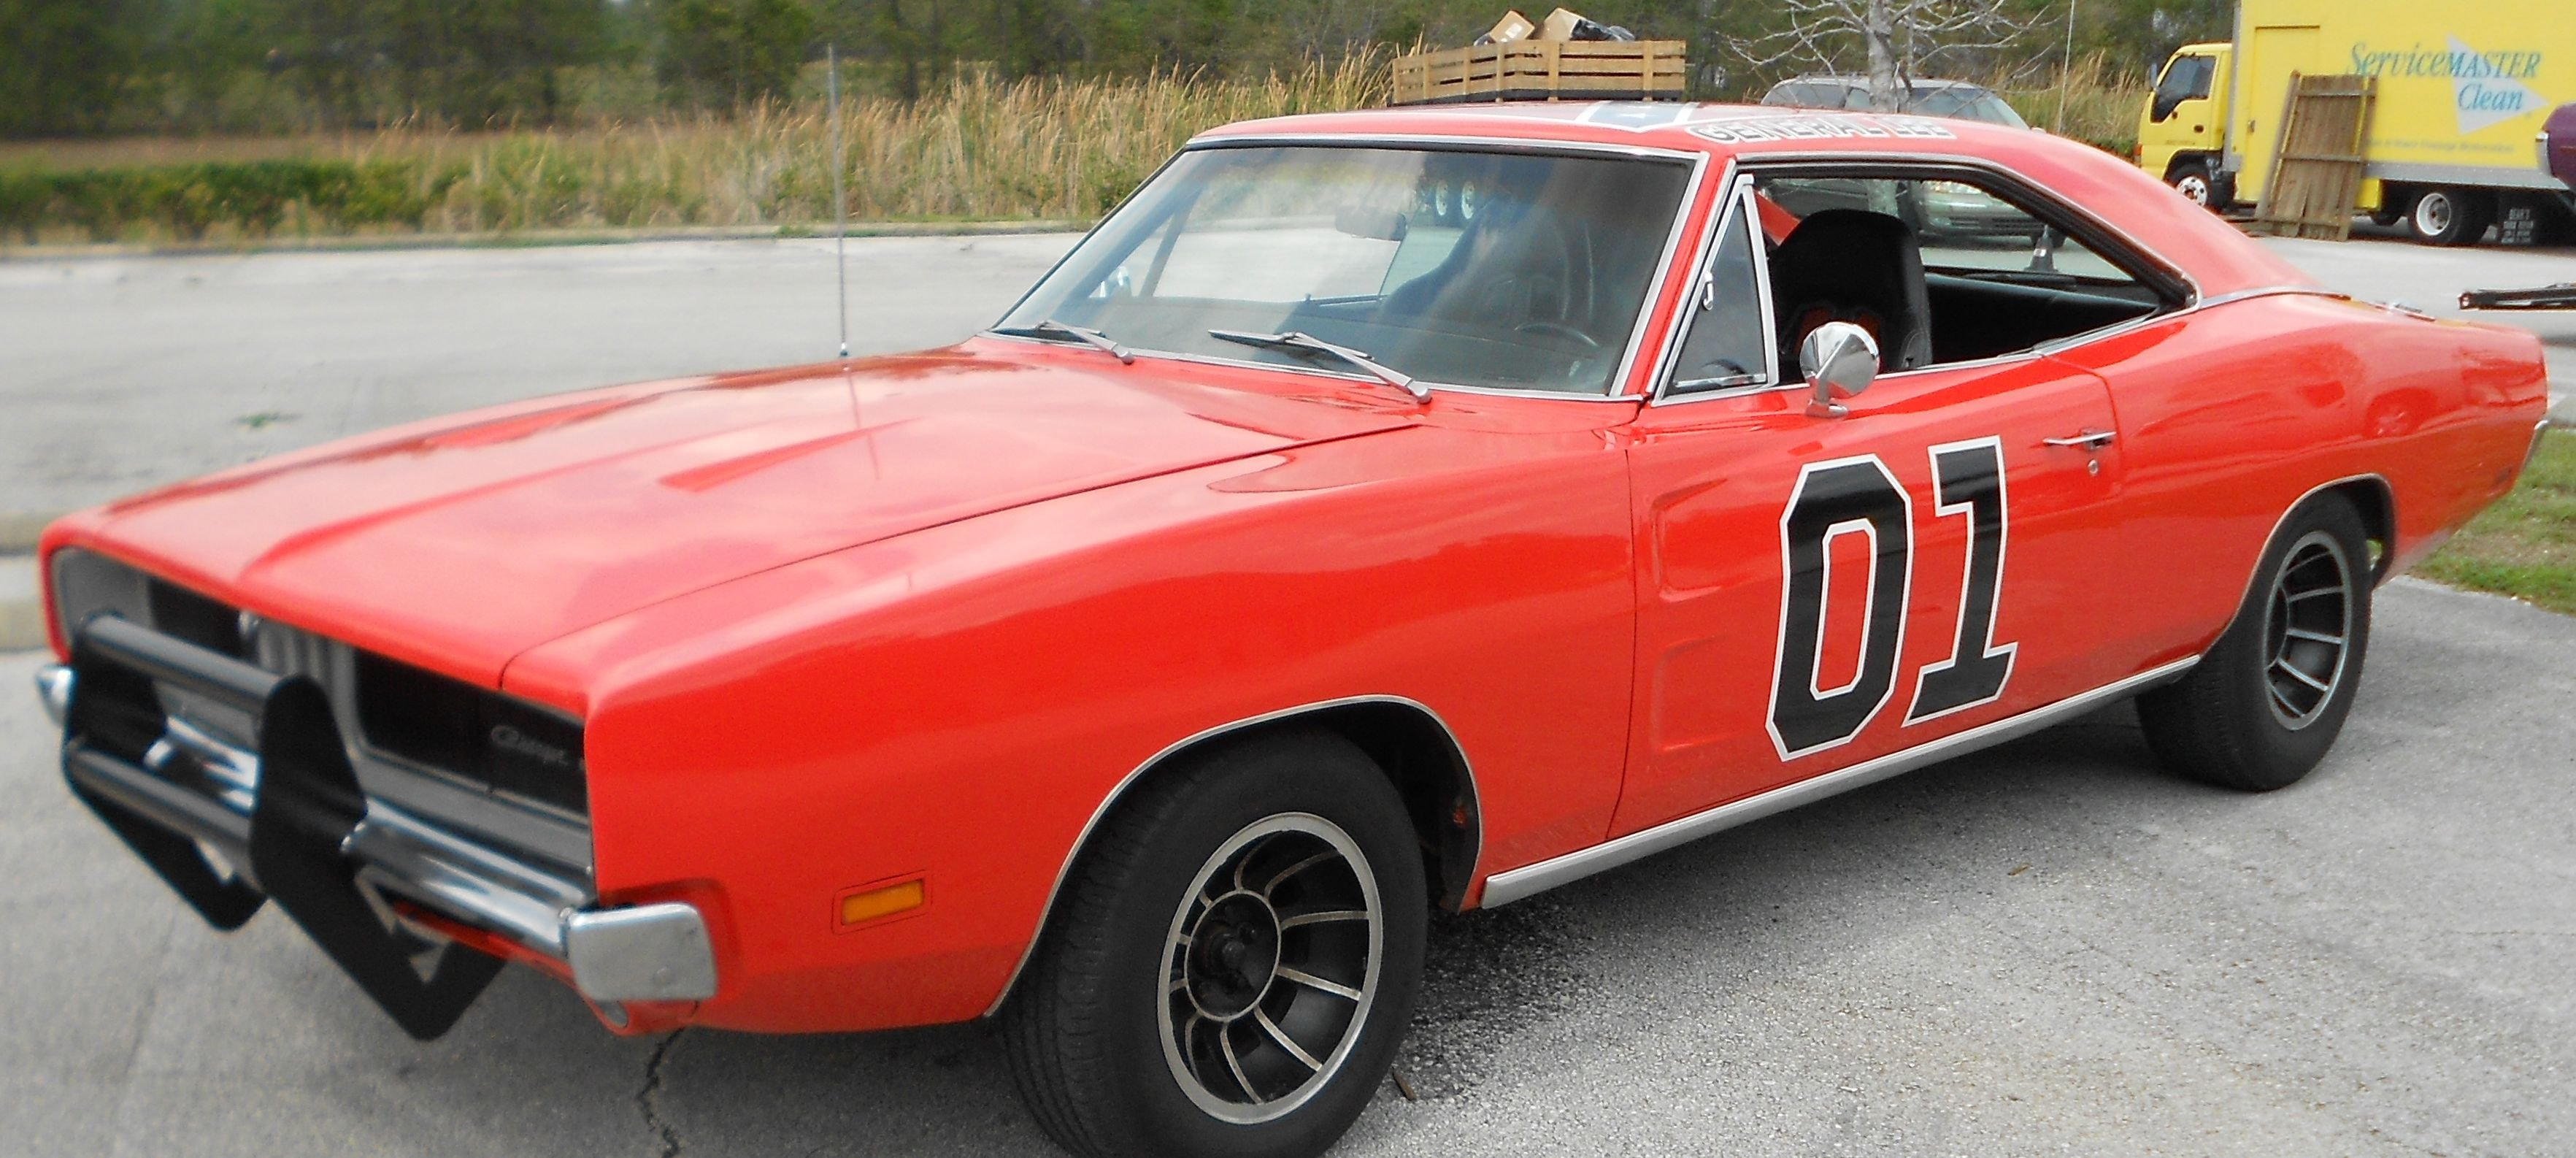 General Lee Dukes Hazzard Dodge Charger Muscle Hot Rod Rods